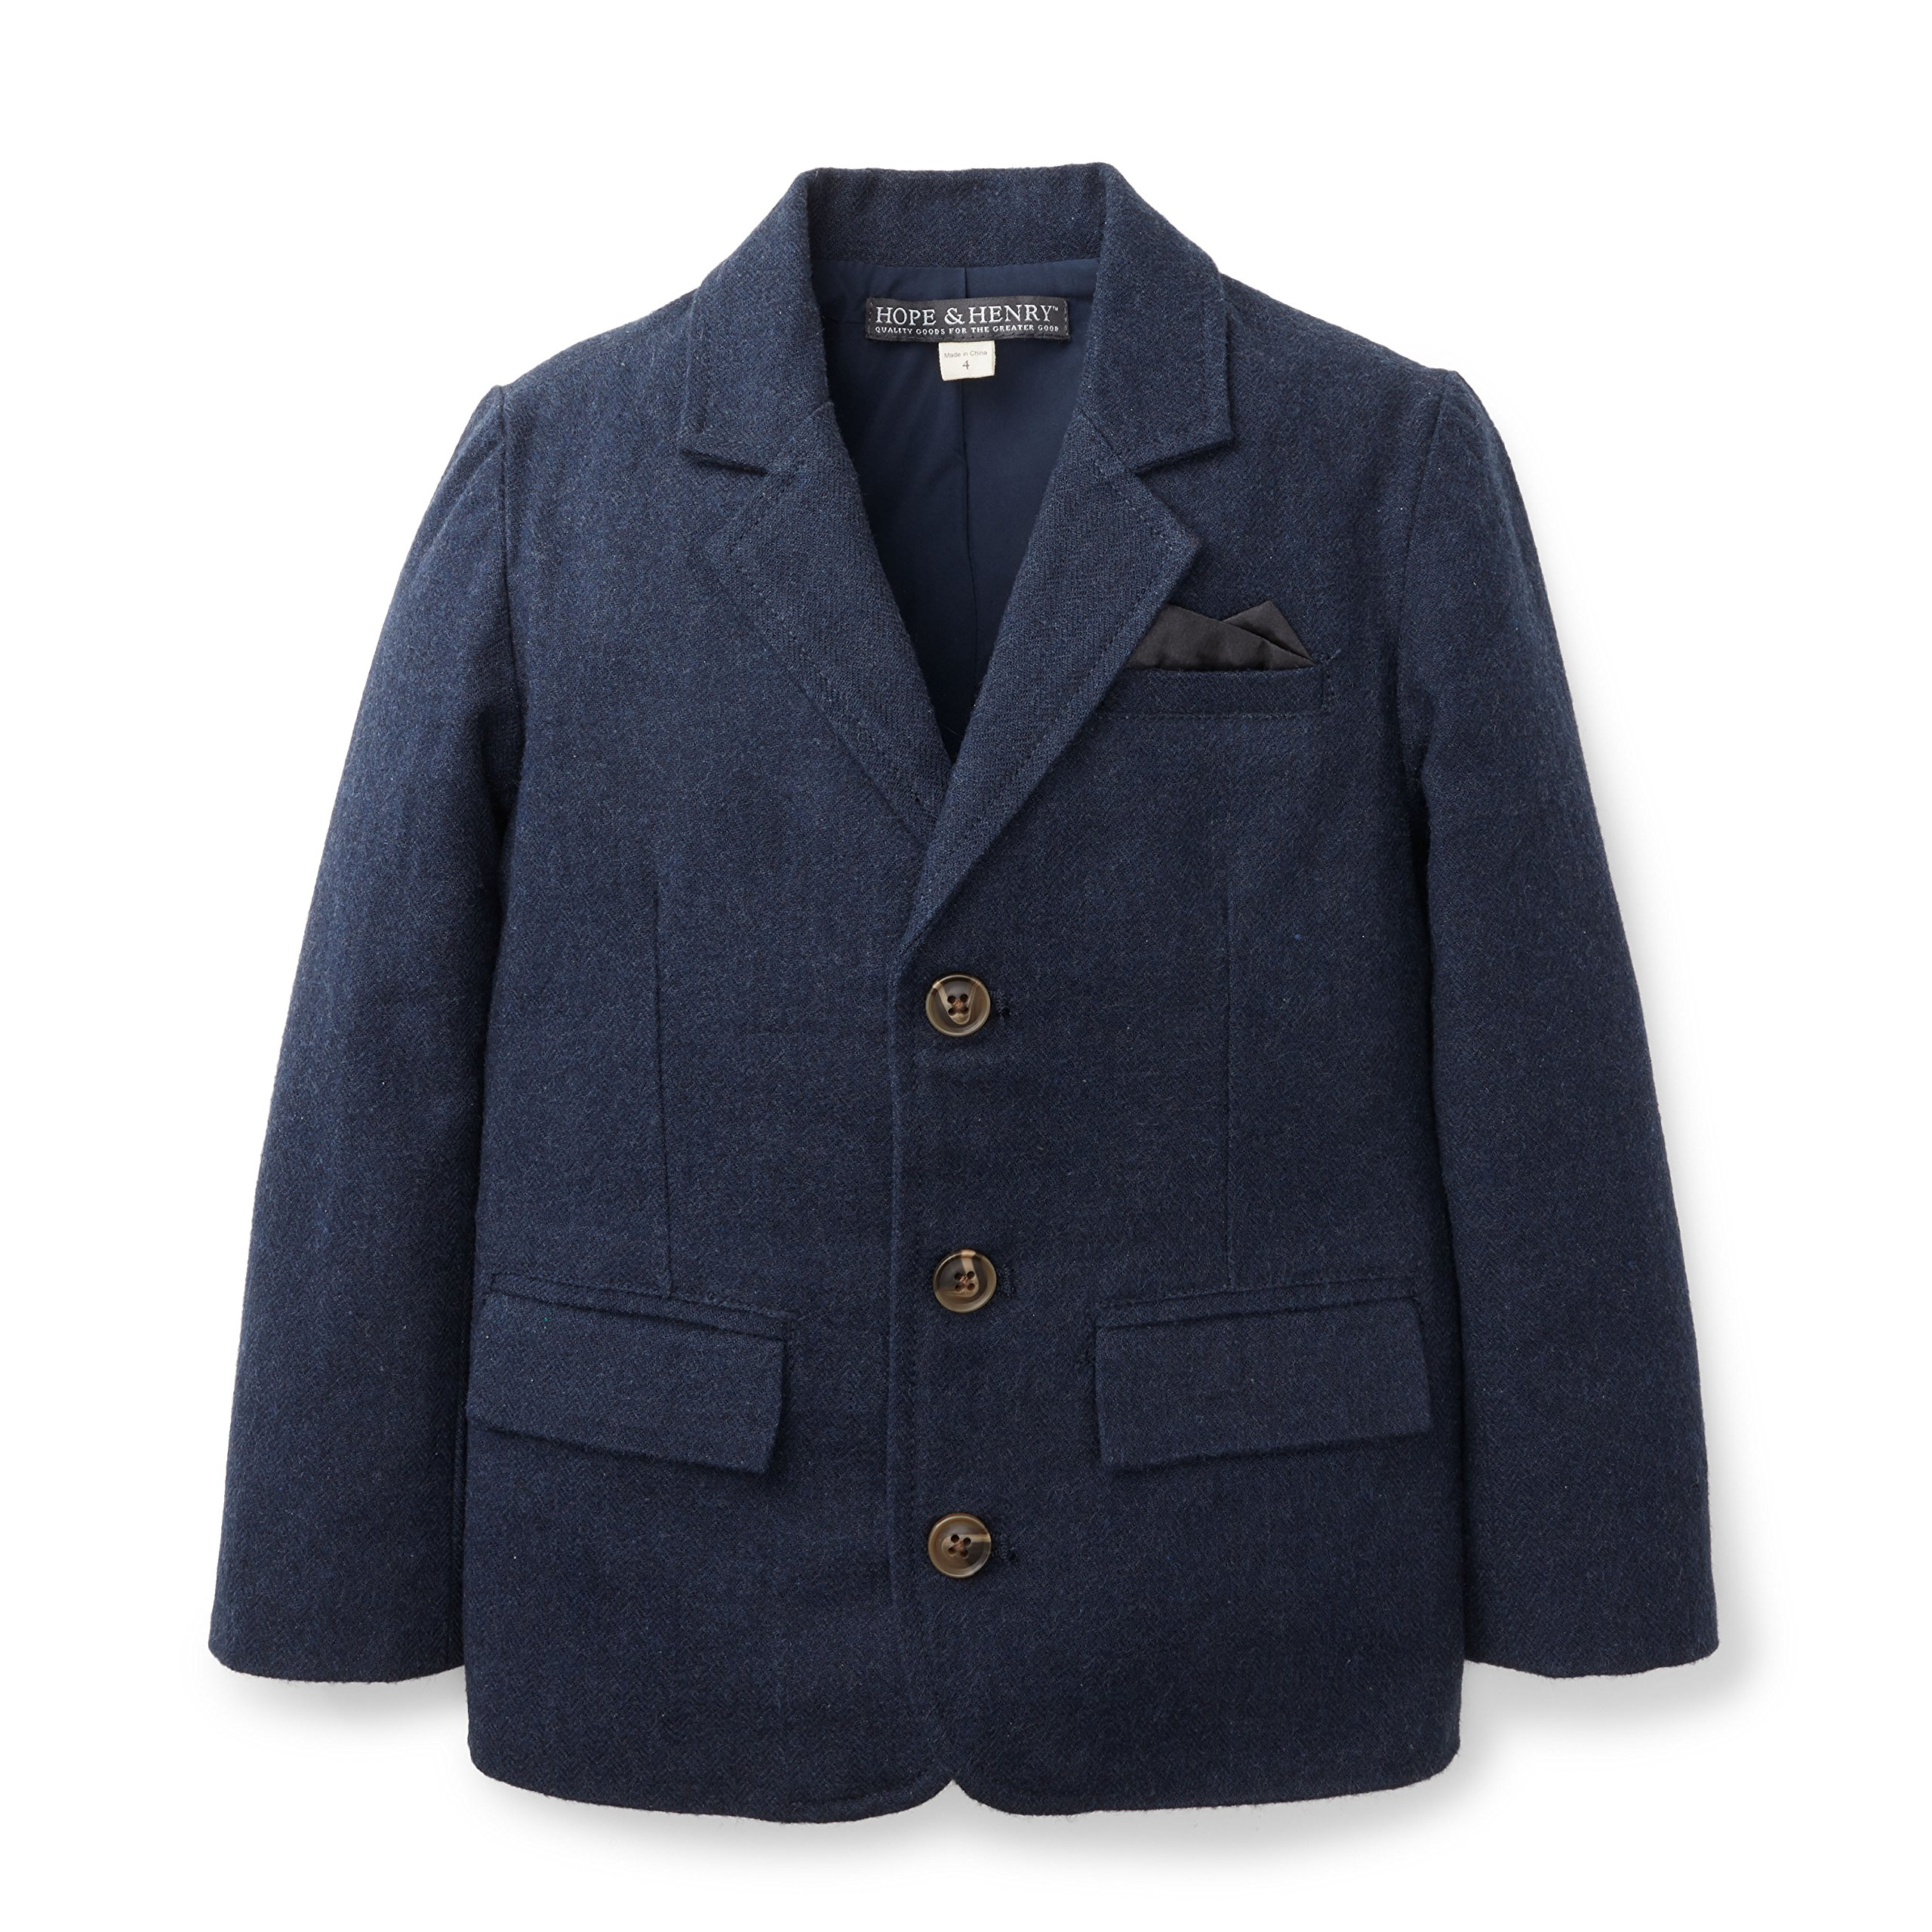 Hope & Henry Boys' Navy Suit Jacket Size 2T